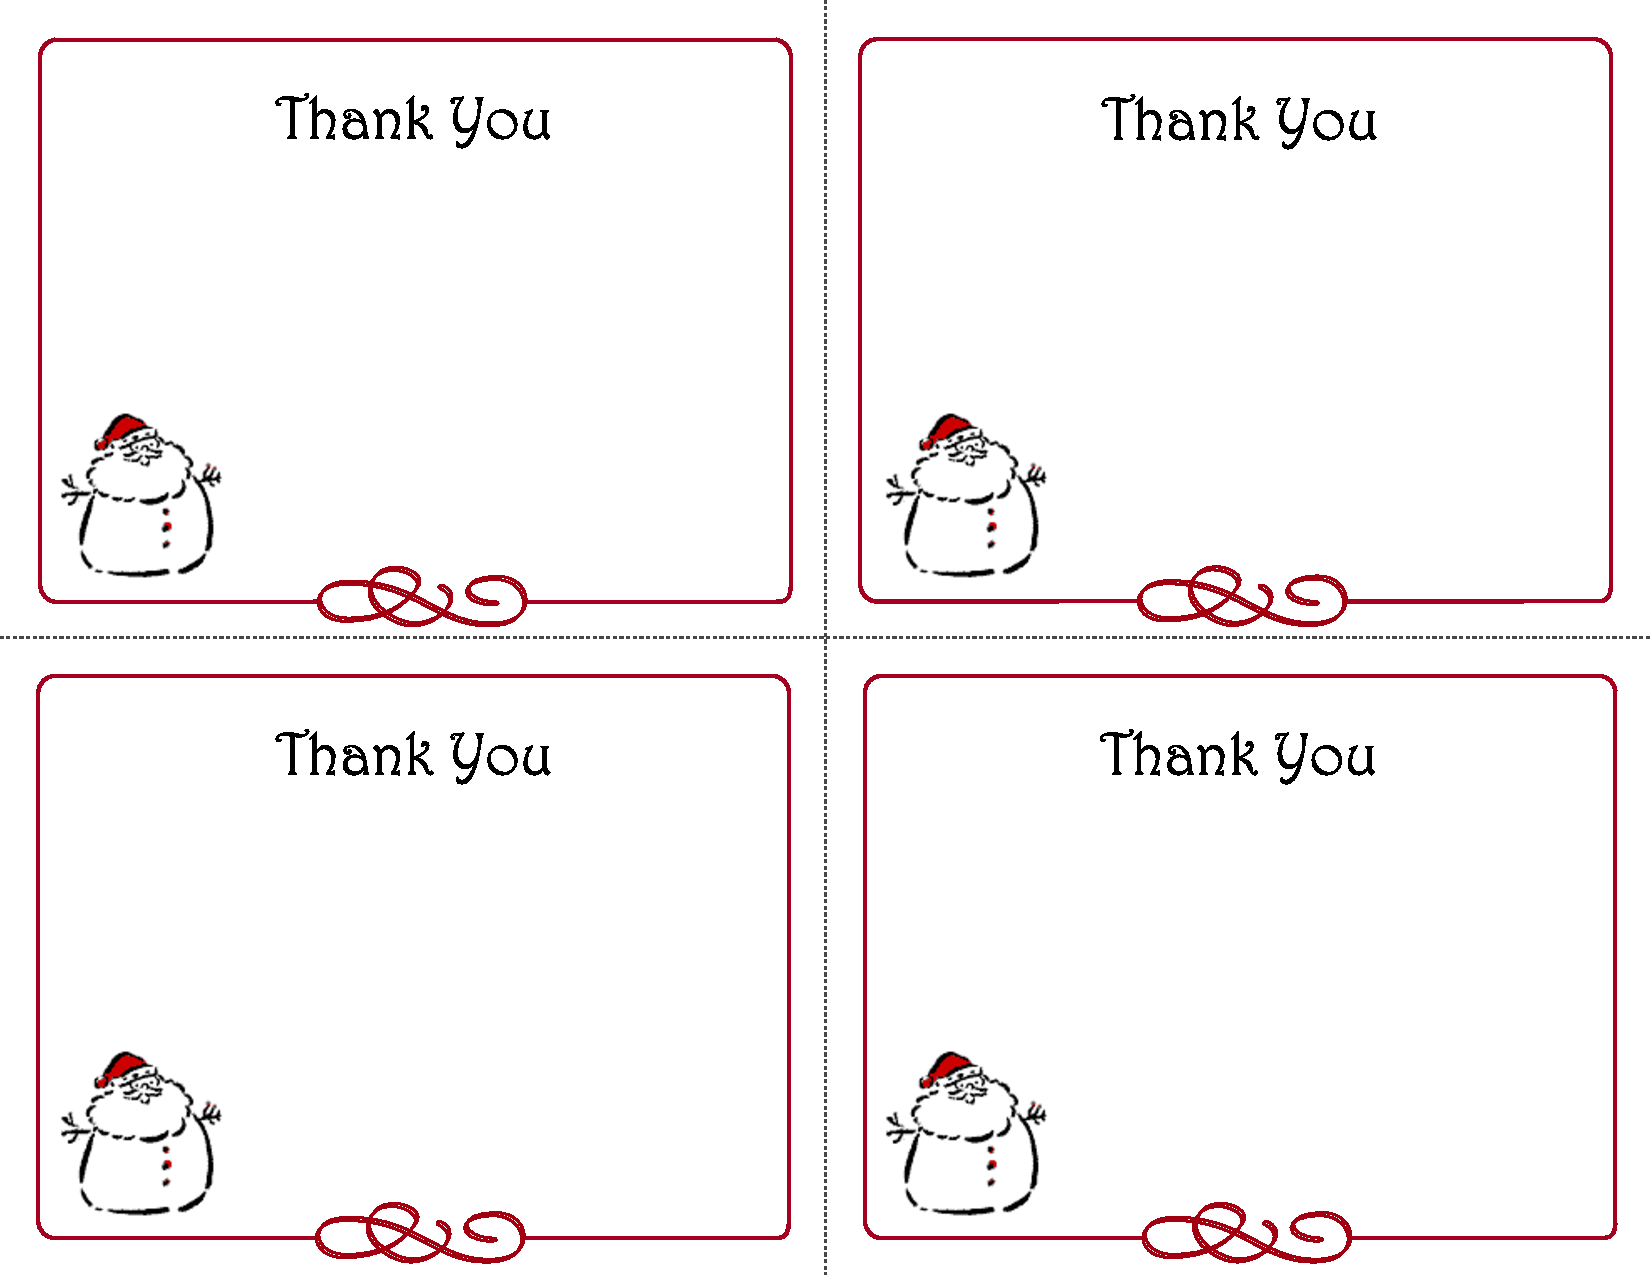 6 Images of Thank You Card Templates Free Printables